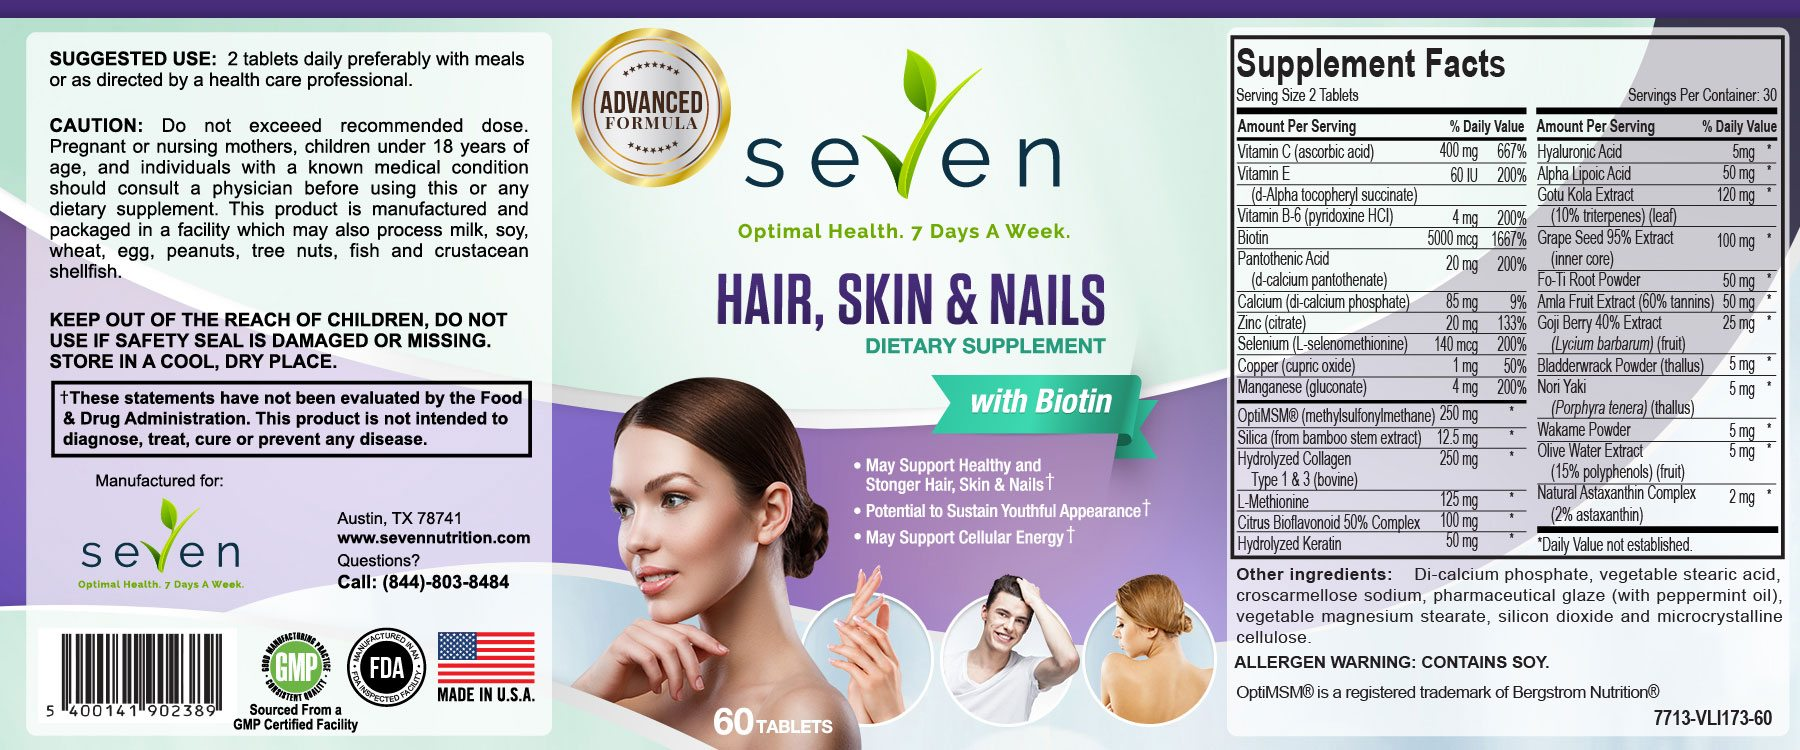 Hair Skin and Nails Supplement Facts